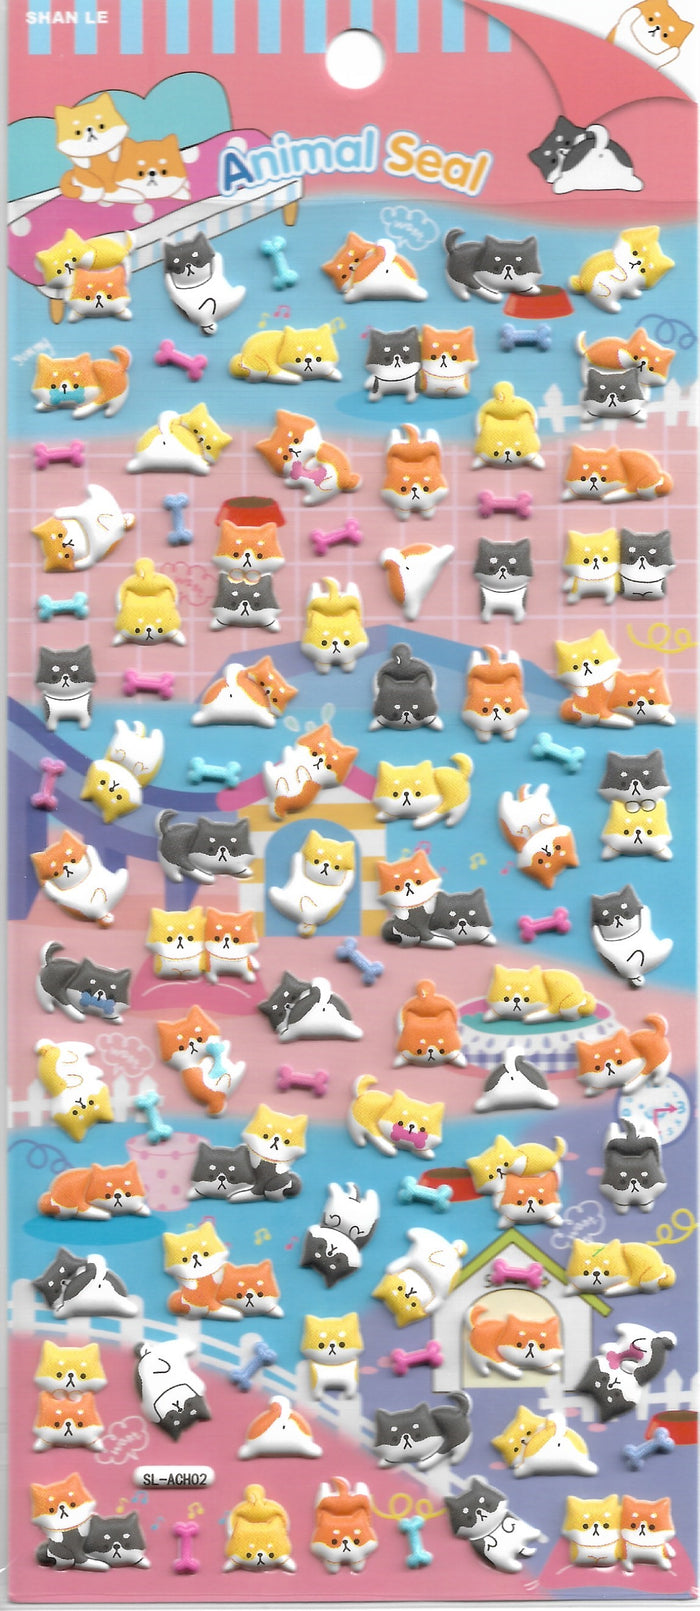 Animal Seal Shiba Inu & Friends Puffy Sticker Sheet